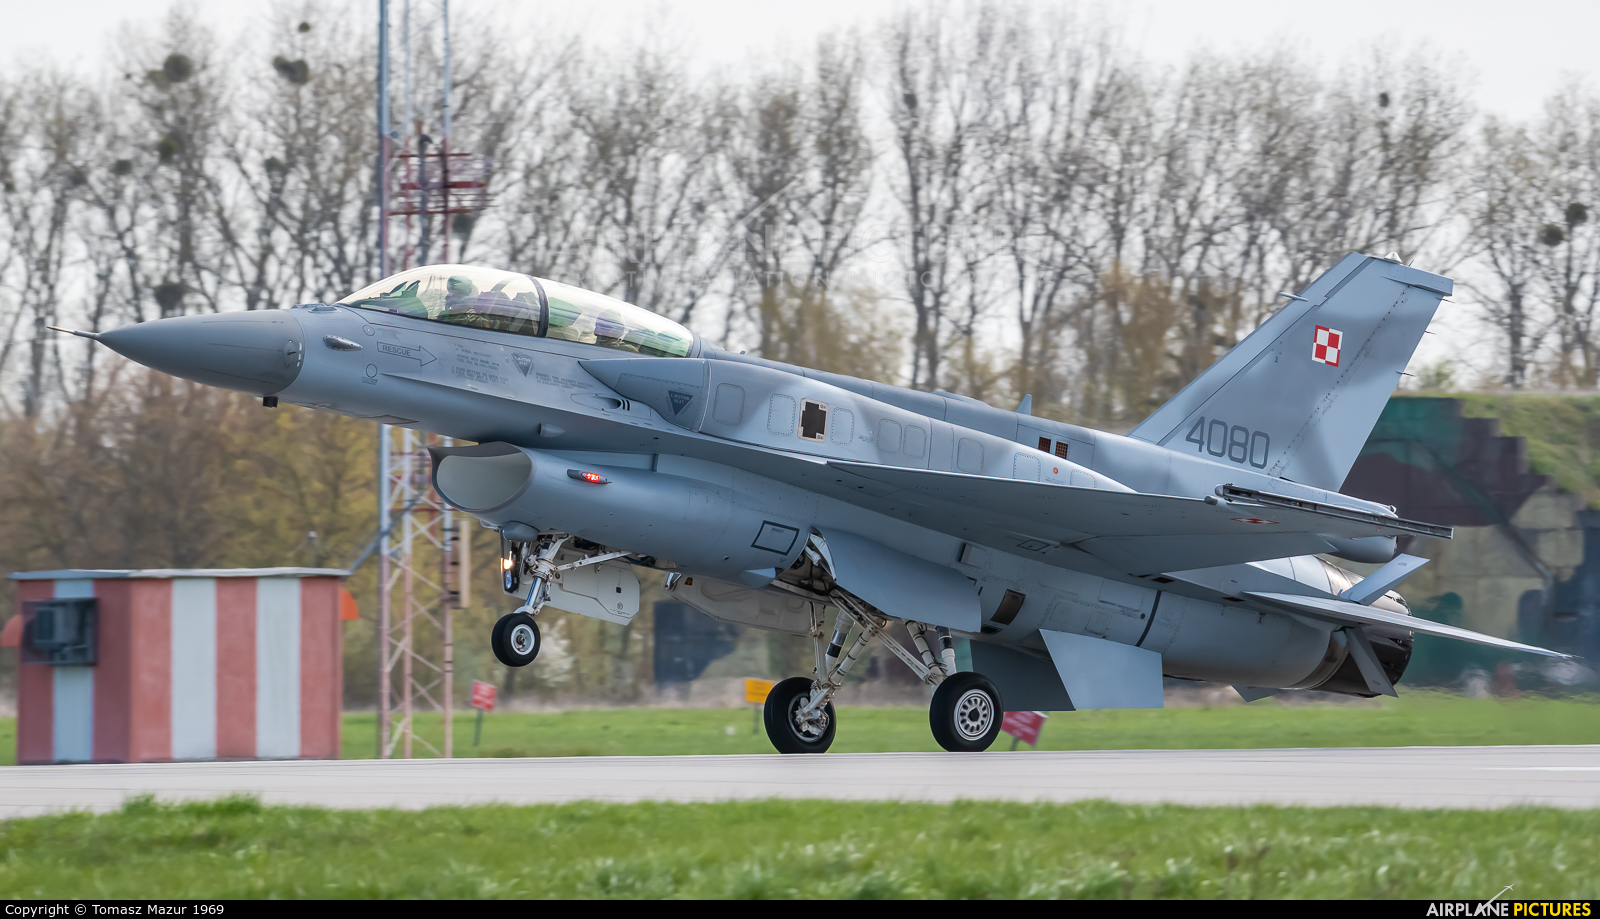 Poland - Air Force 4080 aircraft at Poznań - Krzesiny